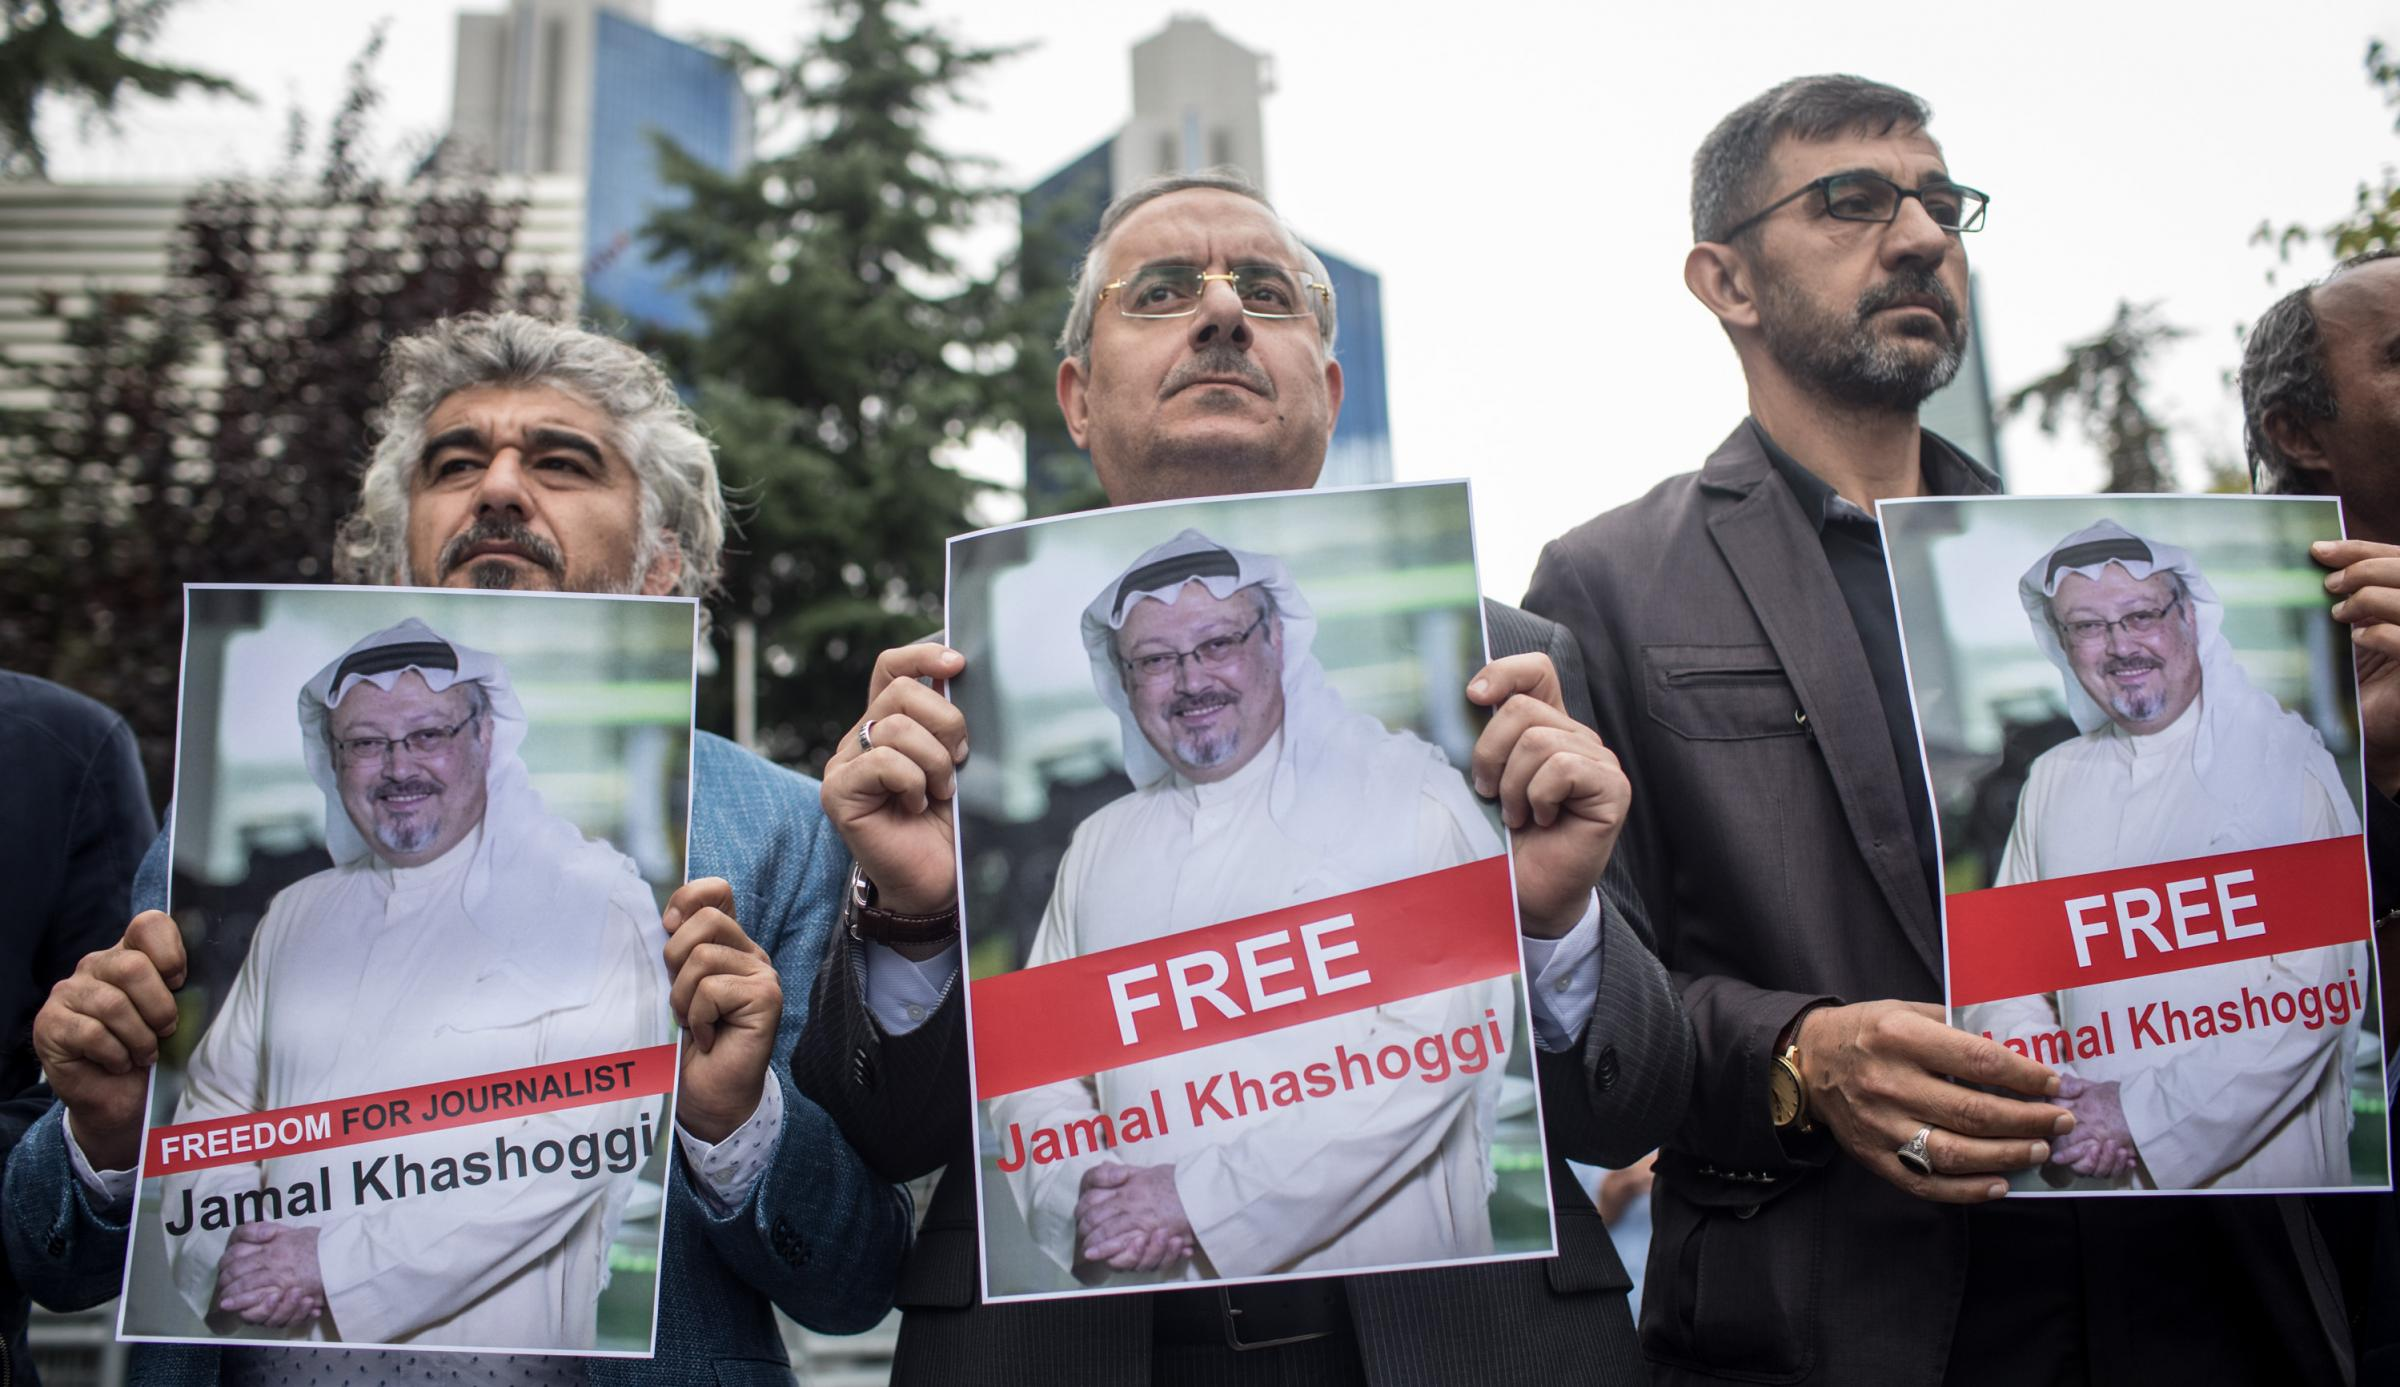 The names are reportedly associated with the disappearance of journalist Jamal Khashoggi